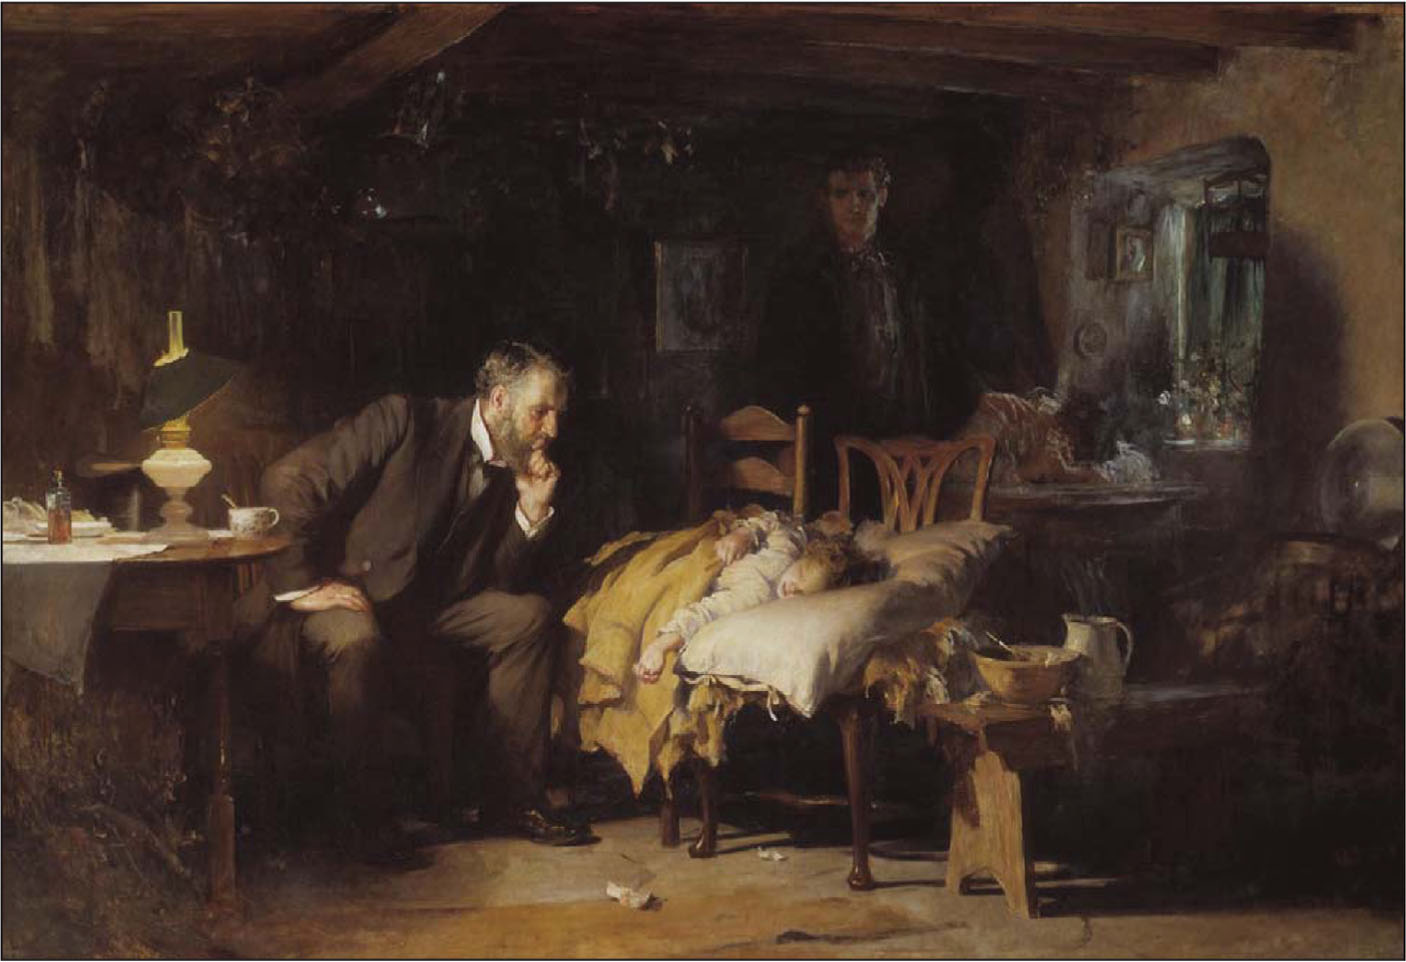 """A painting by illustrator Sir Luke Fildes entitled """"The Doctor."""" Reprinted with permission from the Tate Museum.3"""